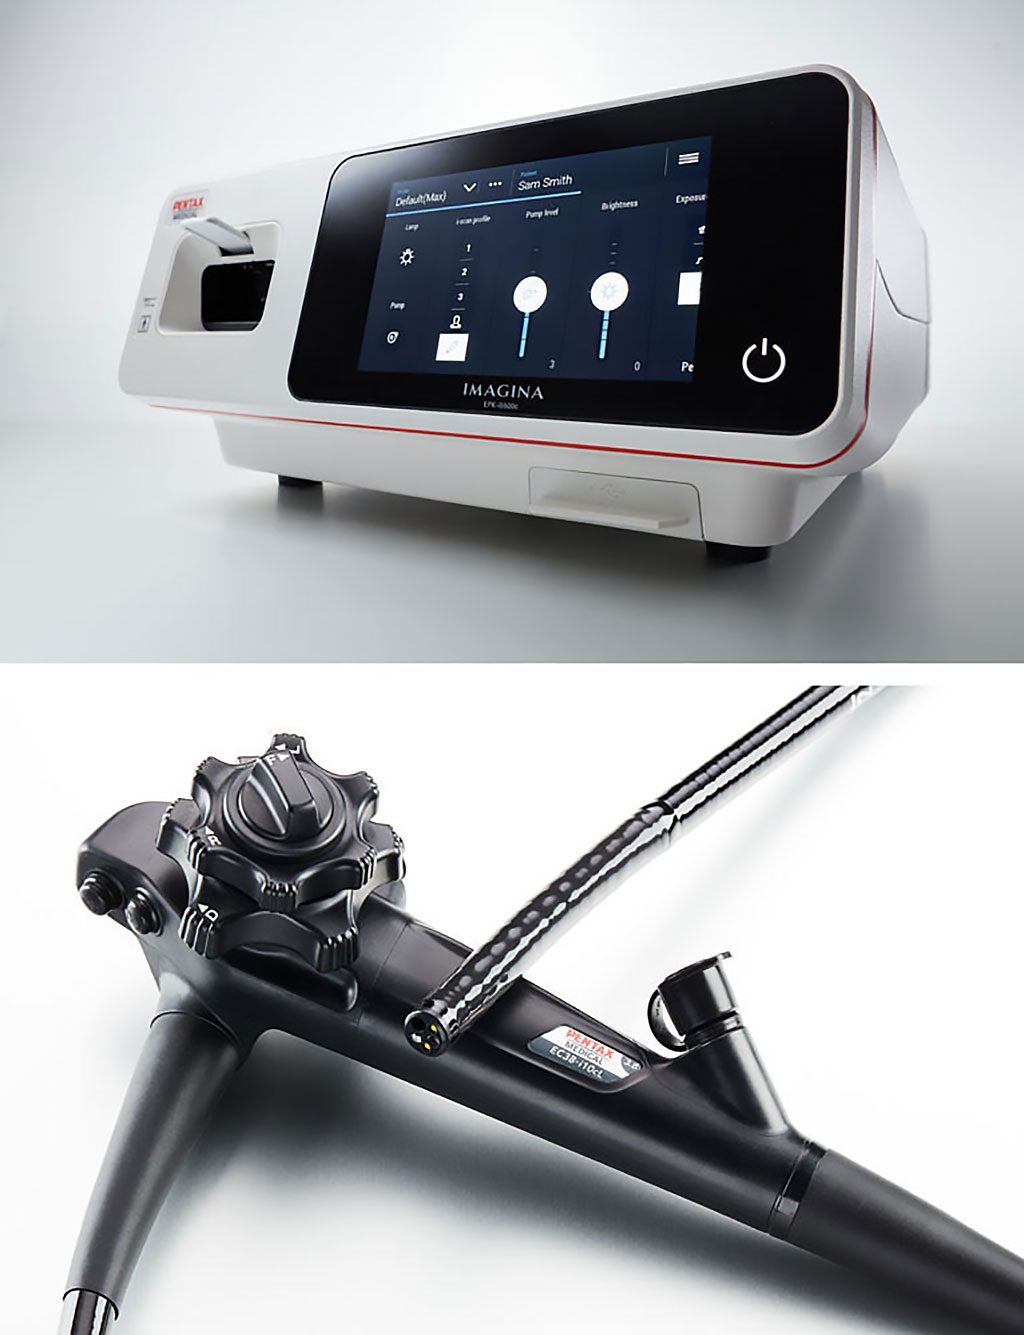 Image: The Pentax Medical) Imagina i10C endoscopy system (Photo courtesy of Pentax medical)